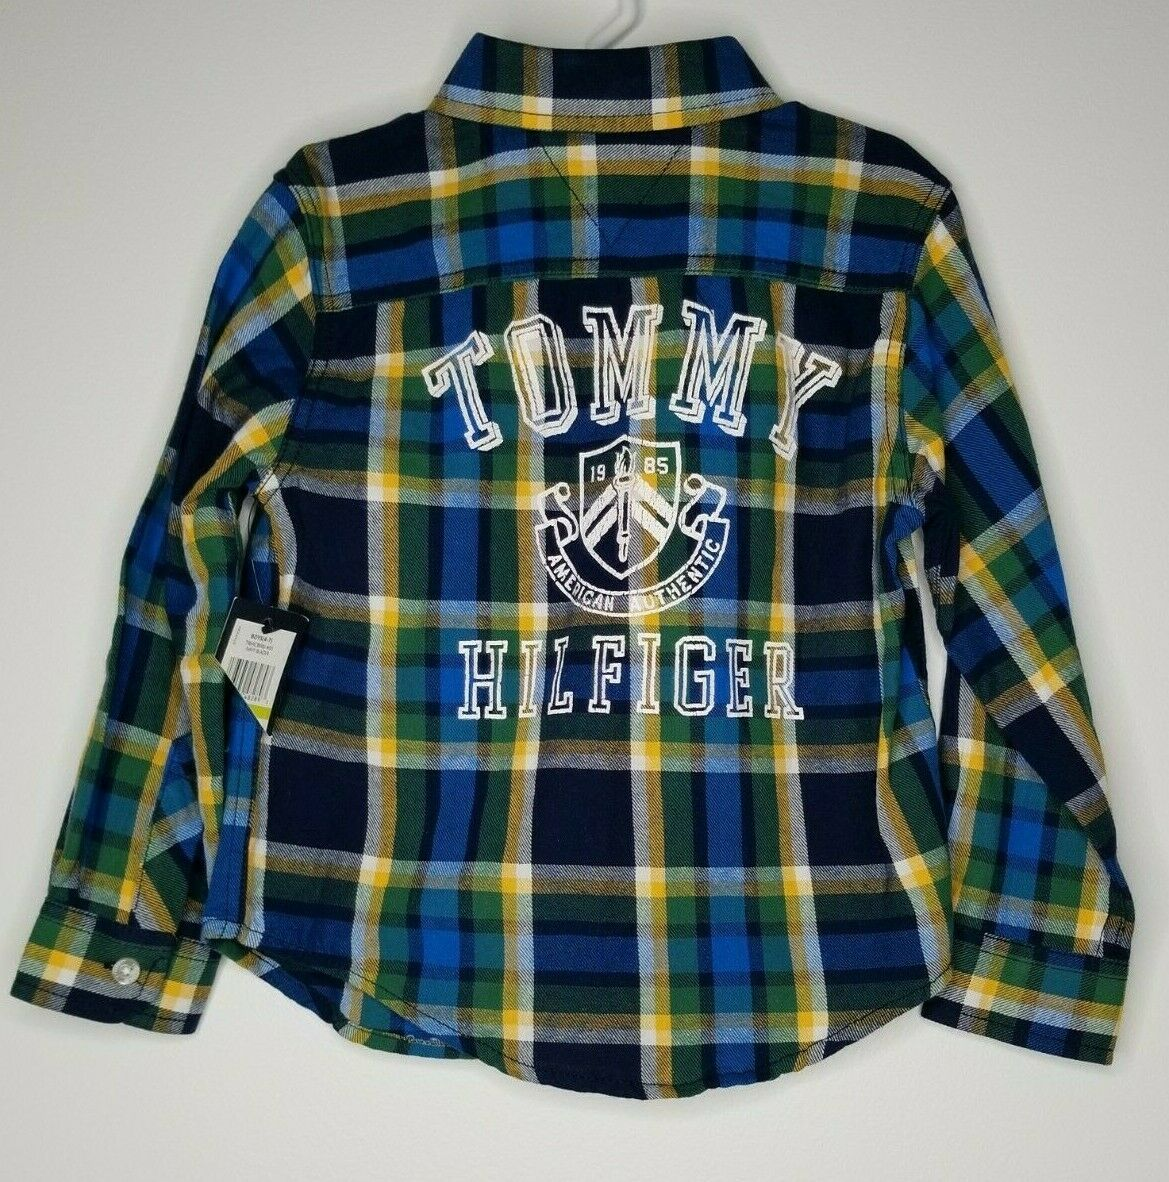 Primary image for TOMMY HILFIGER Boy's Spell Out Plaid Shirt Size 4 Long Sleeve NEW